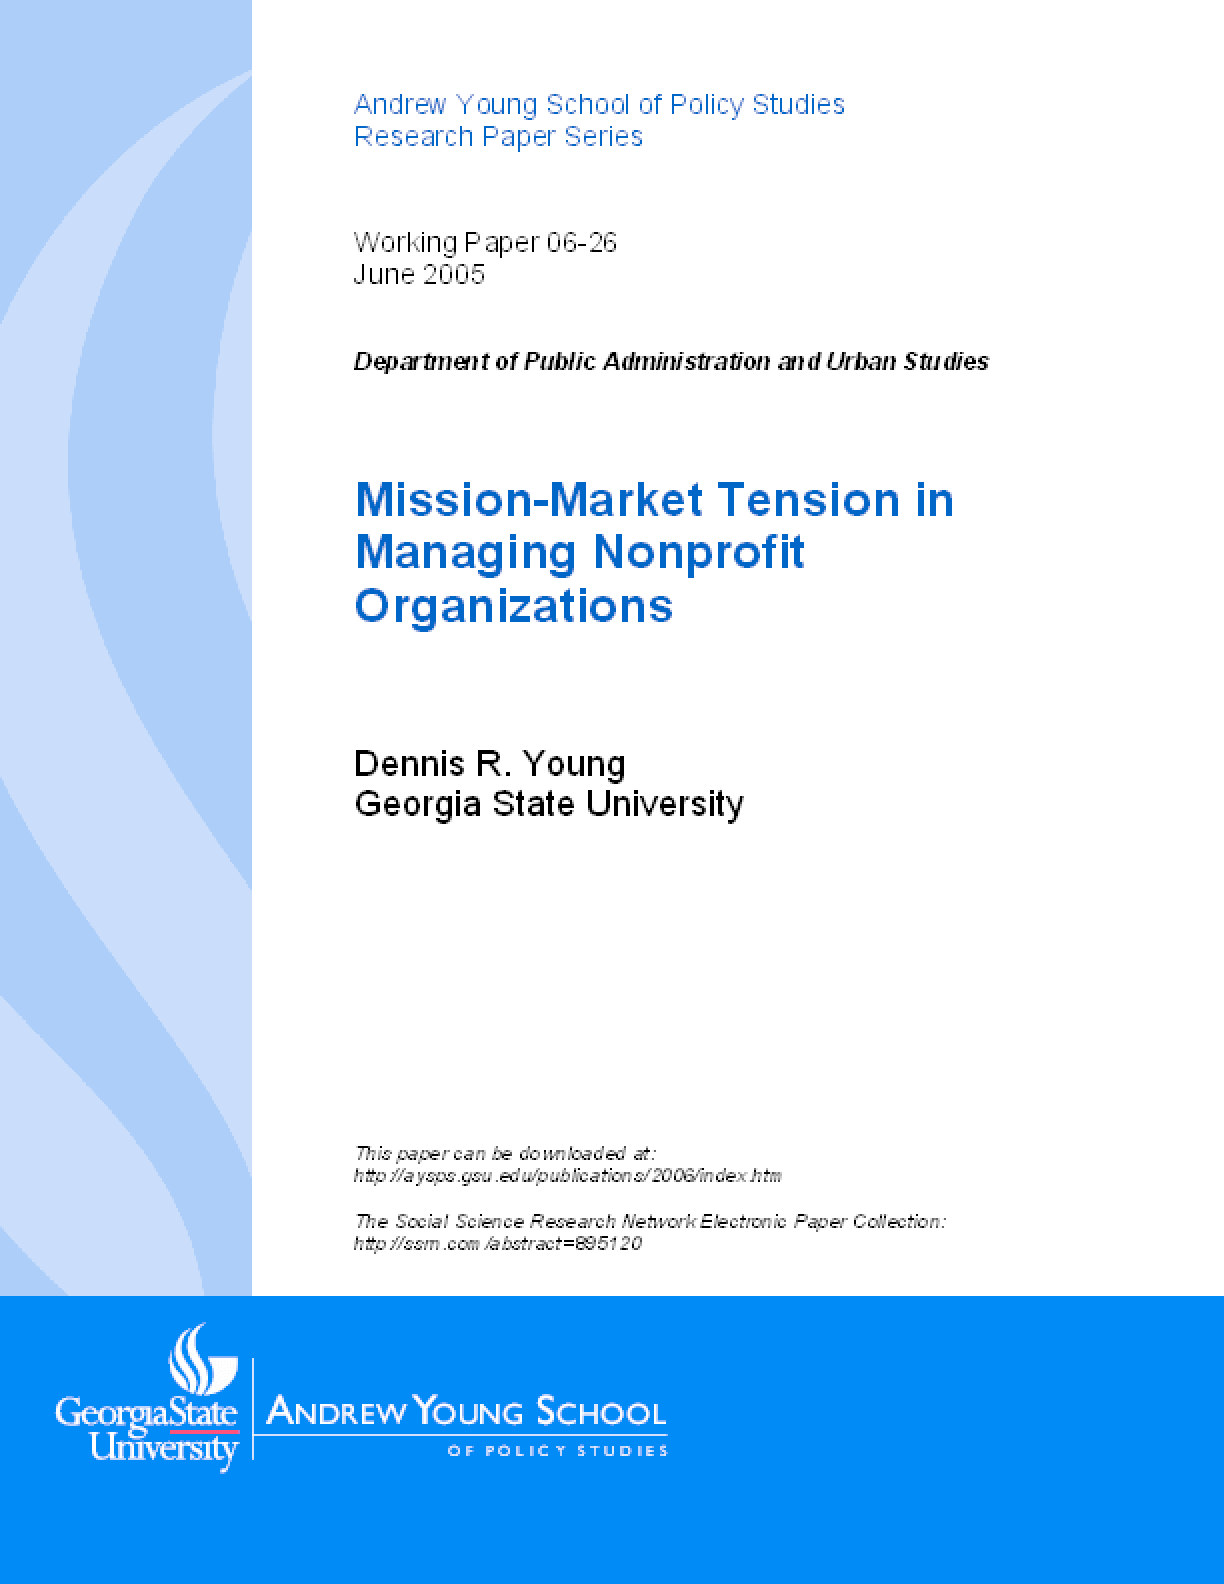 Mission-Market Tension in Managing Nonprofit Organizations